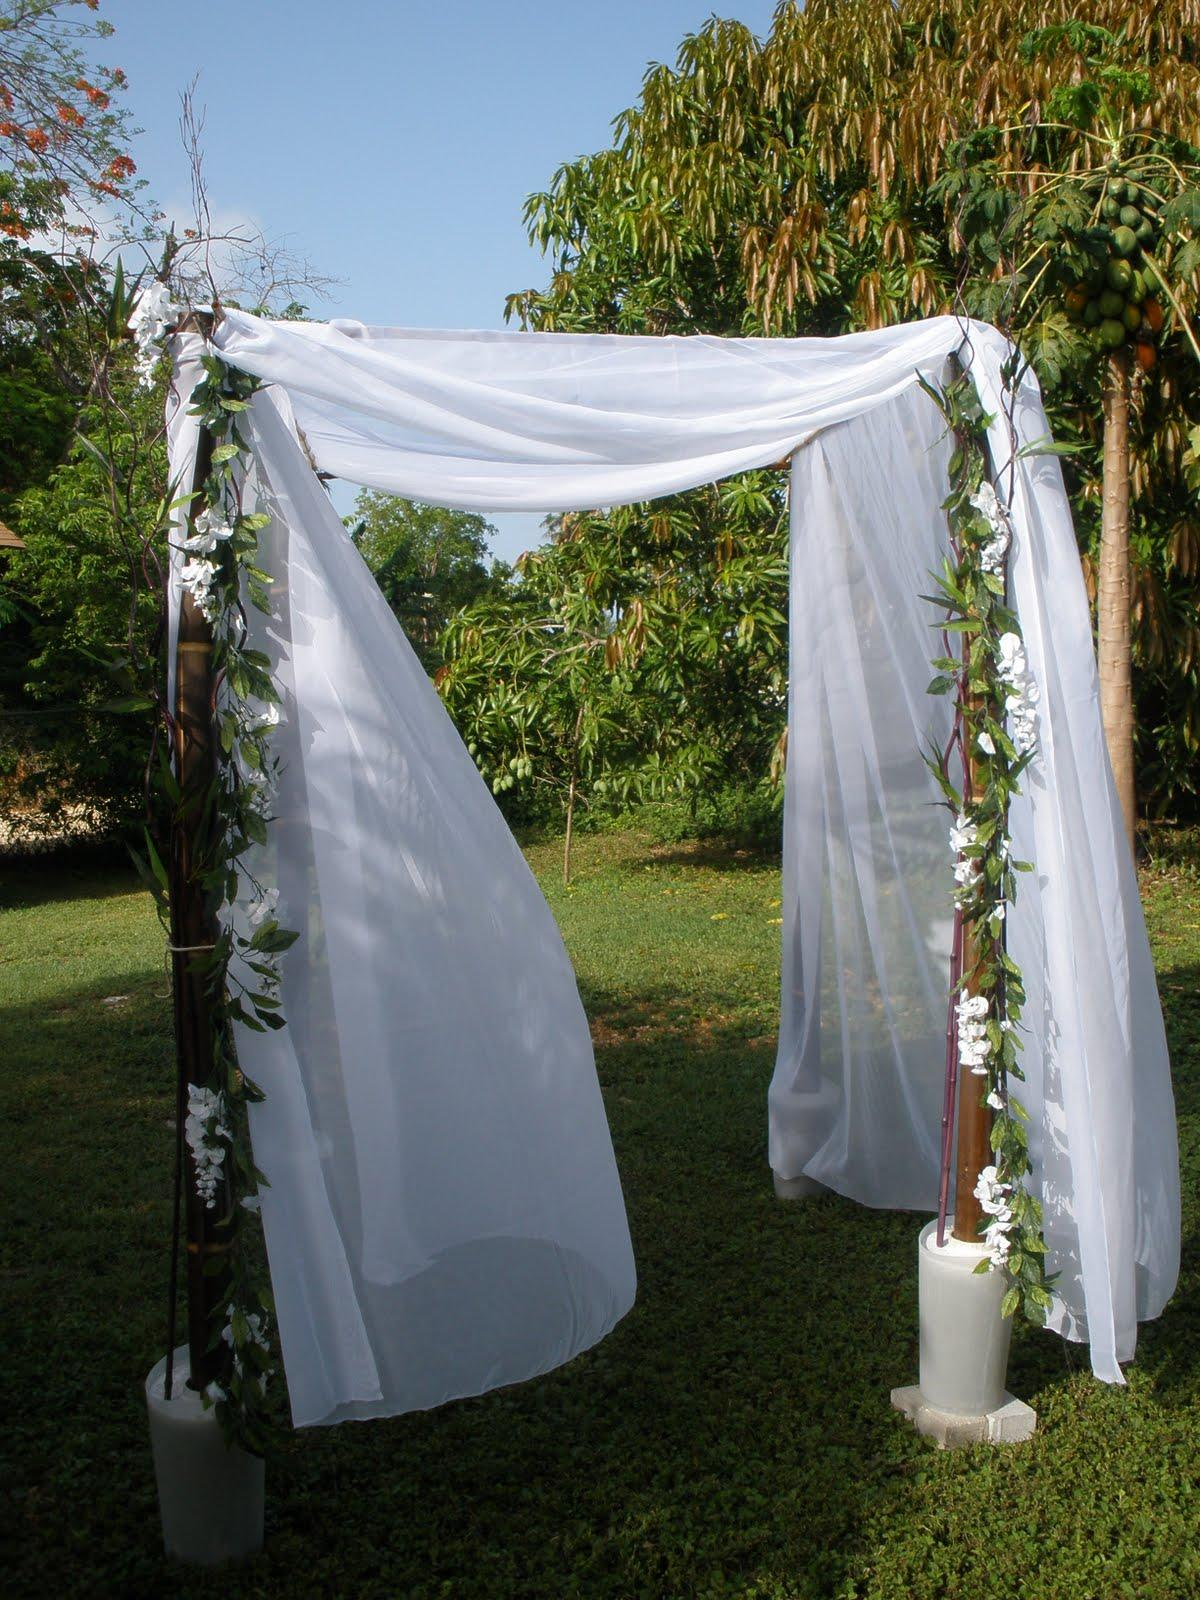 The chuppah covering can be